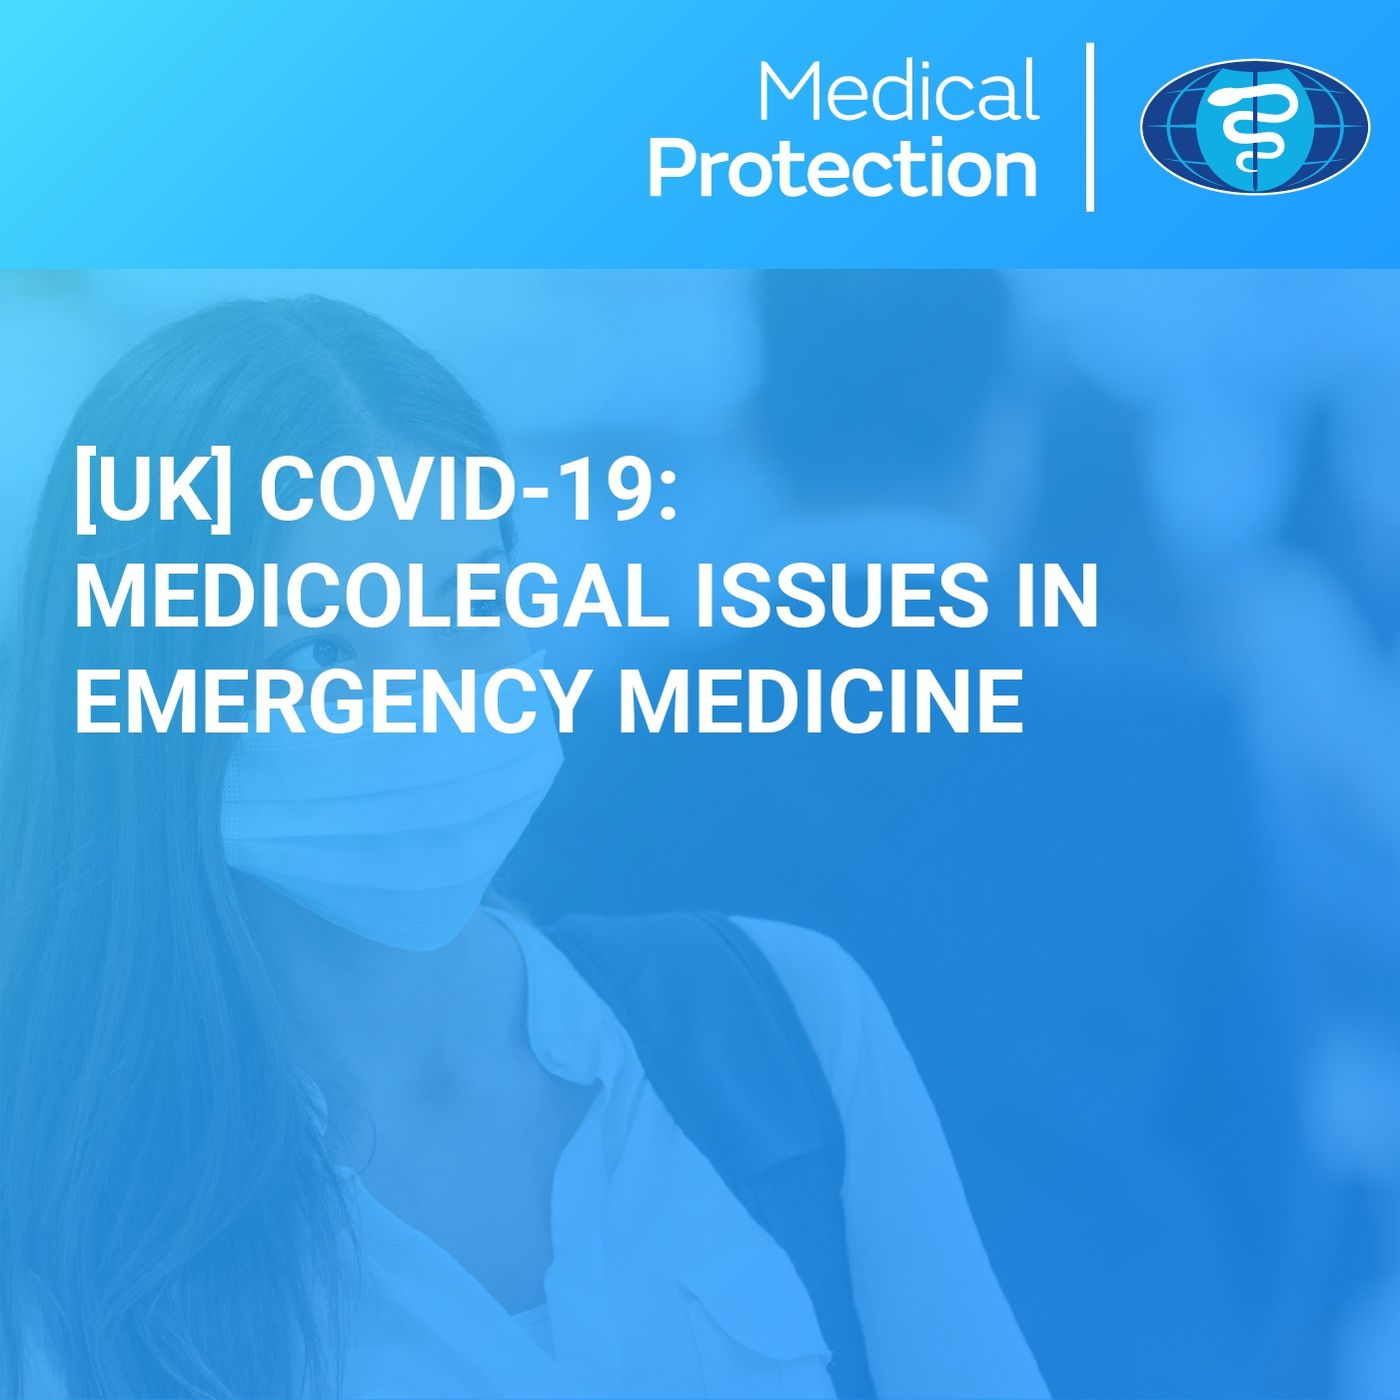 [UK] COVID-19: Medicolegal issues in Emergency Medicine